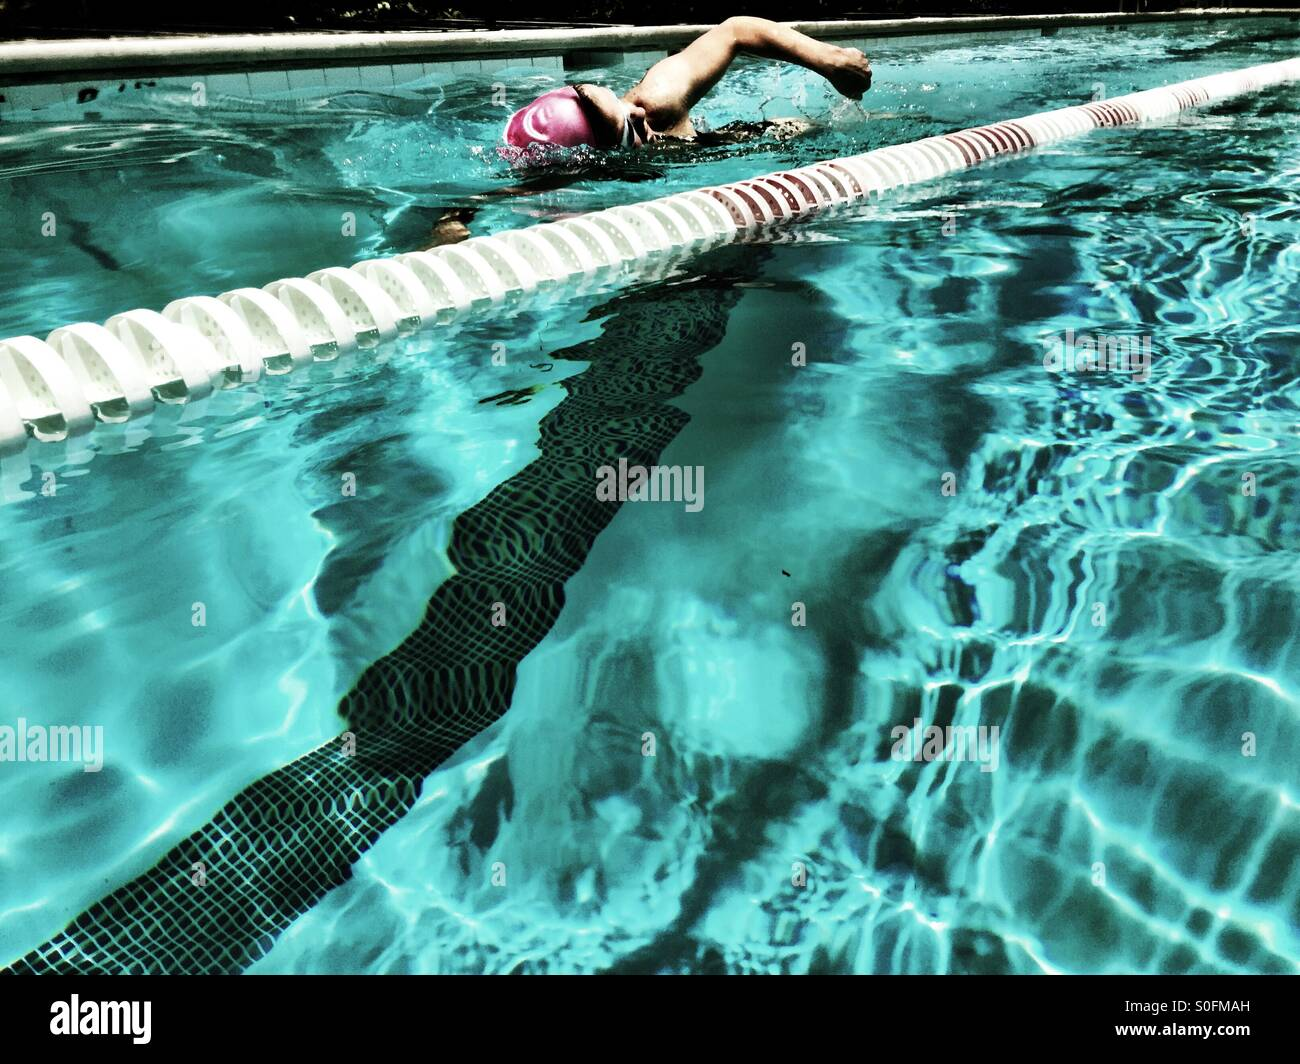 View from adjacent lane, young woman swimming freestyle (Australian) crawl in outdoor Olympic size 25 meter pool. - Stock Image